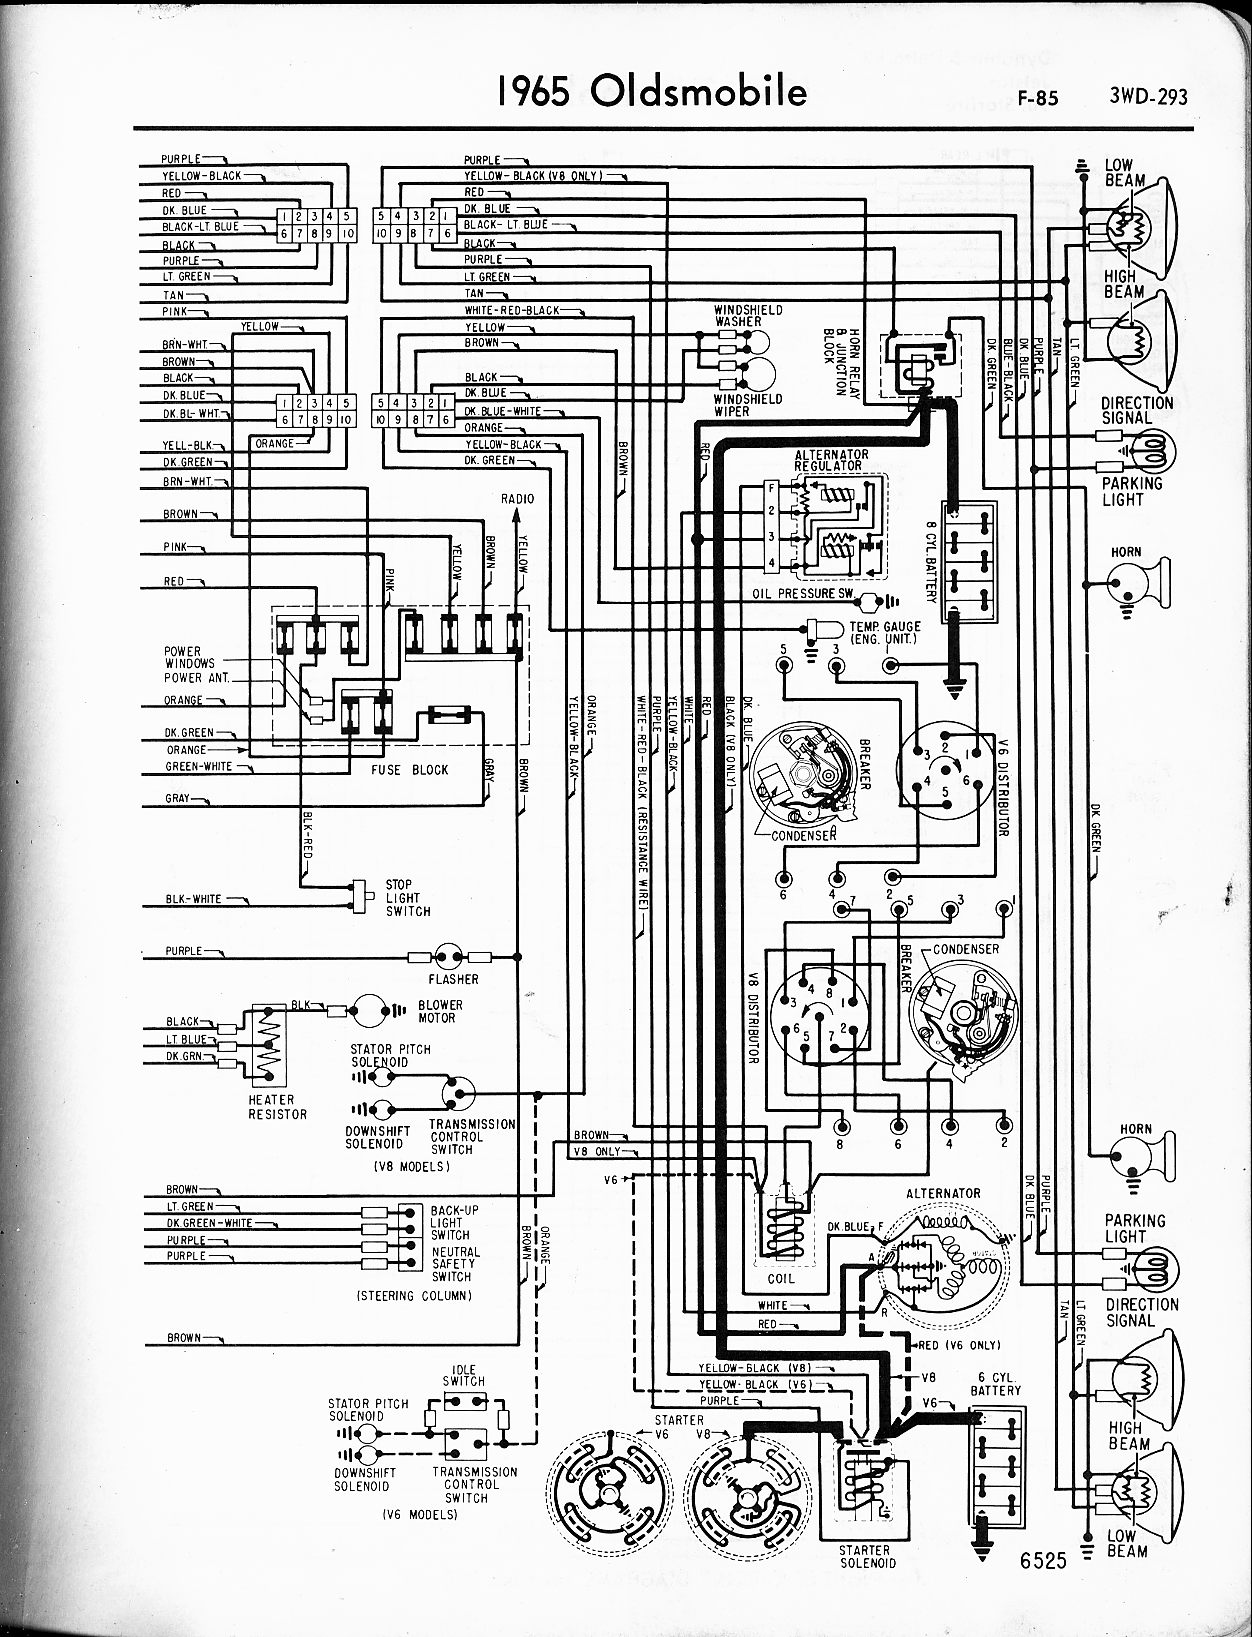 Oldsmobile Wiring Diagrams The Old Car Manual Project Buick Century Ignition Coil Pack Diagram